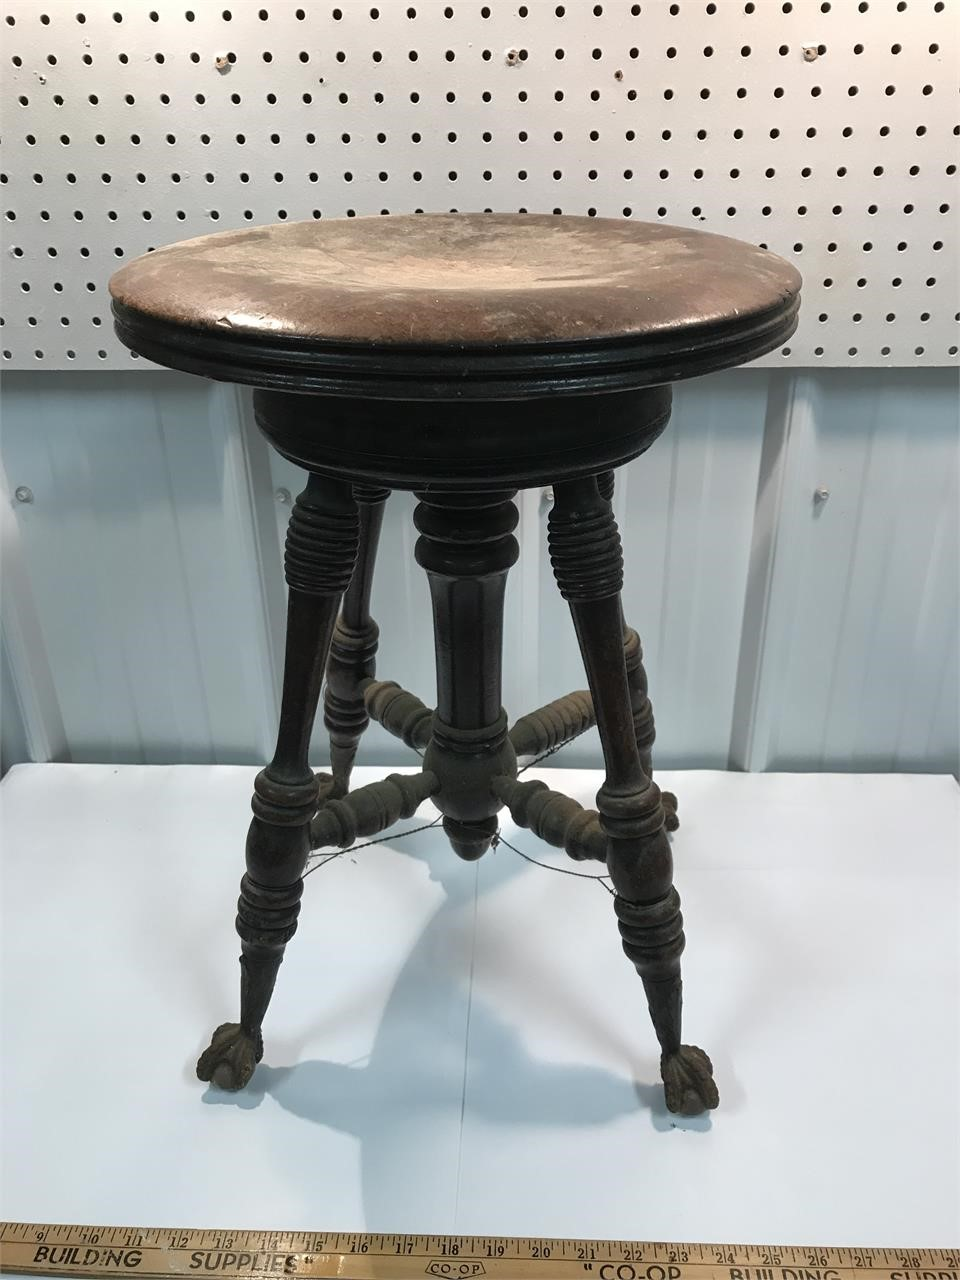 Unreserved Online Auction of Antiques, Tools, Household